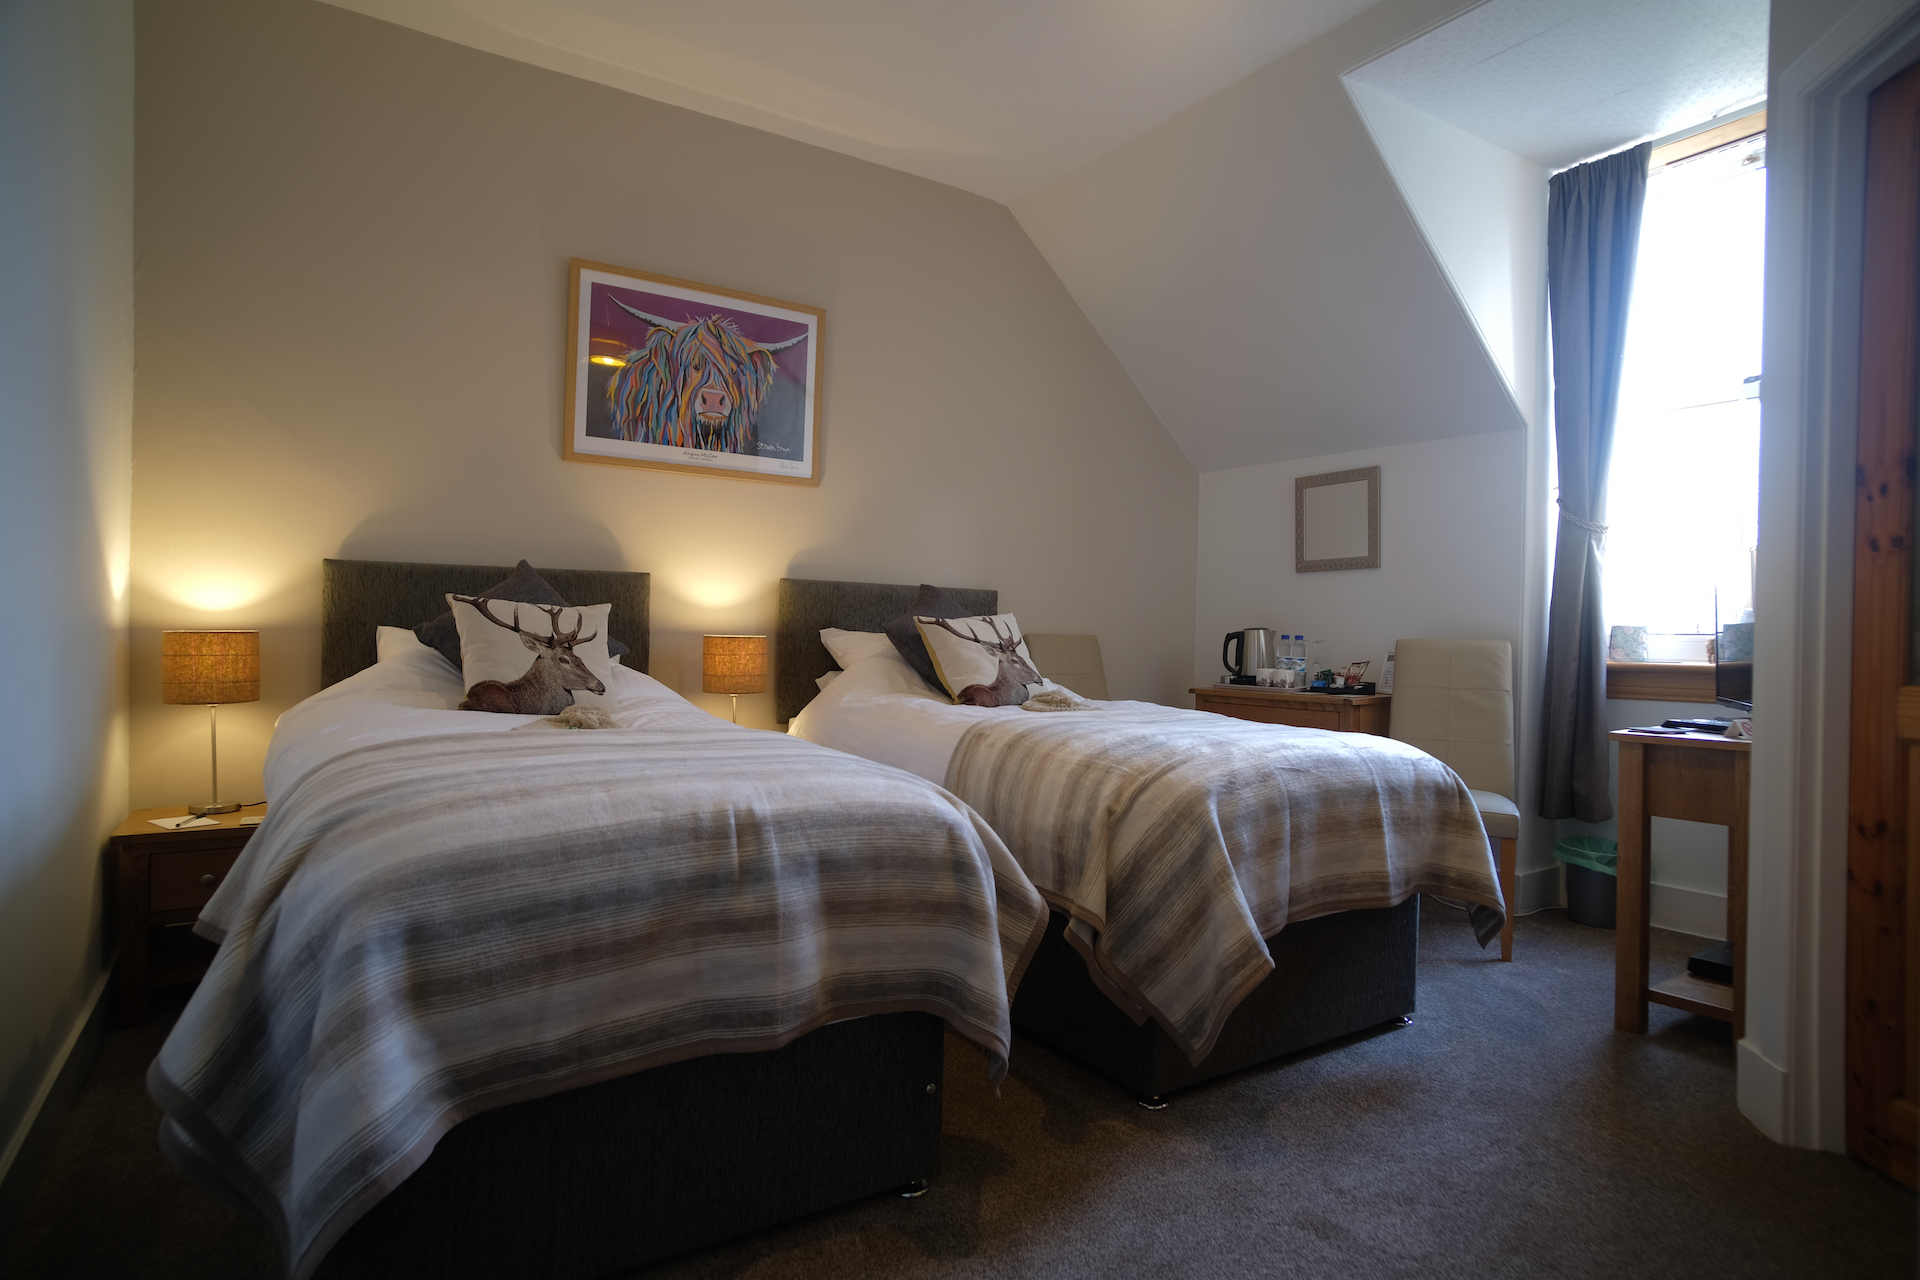 A lovely view of the Great Etive Twin Bedroom at Morlea B&B Loch Ness